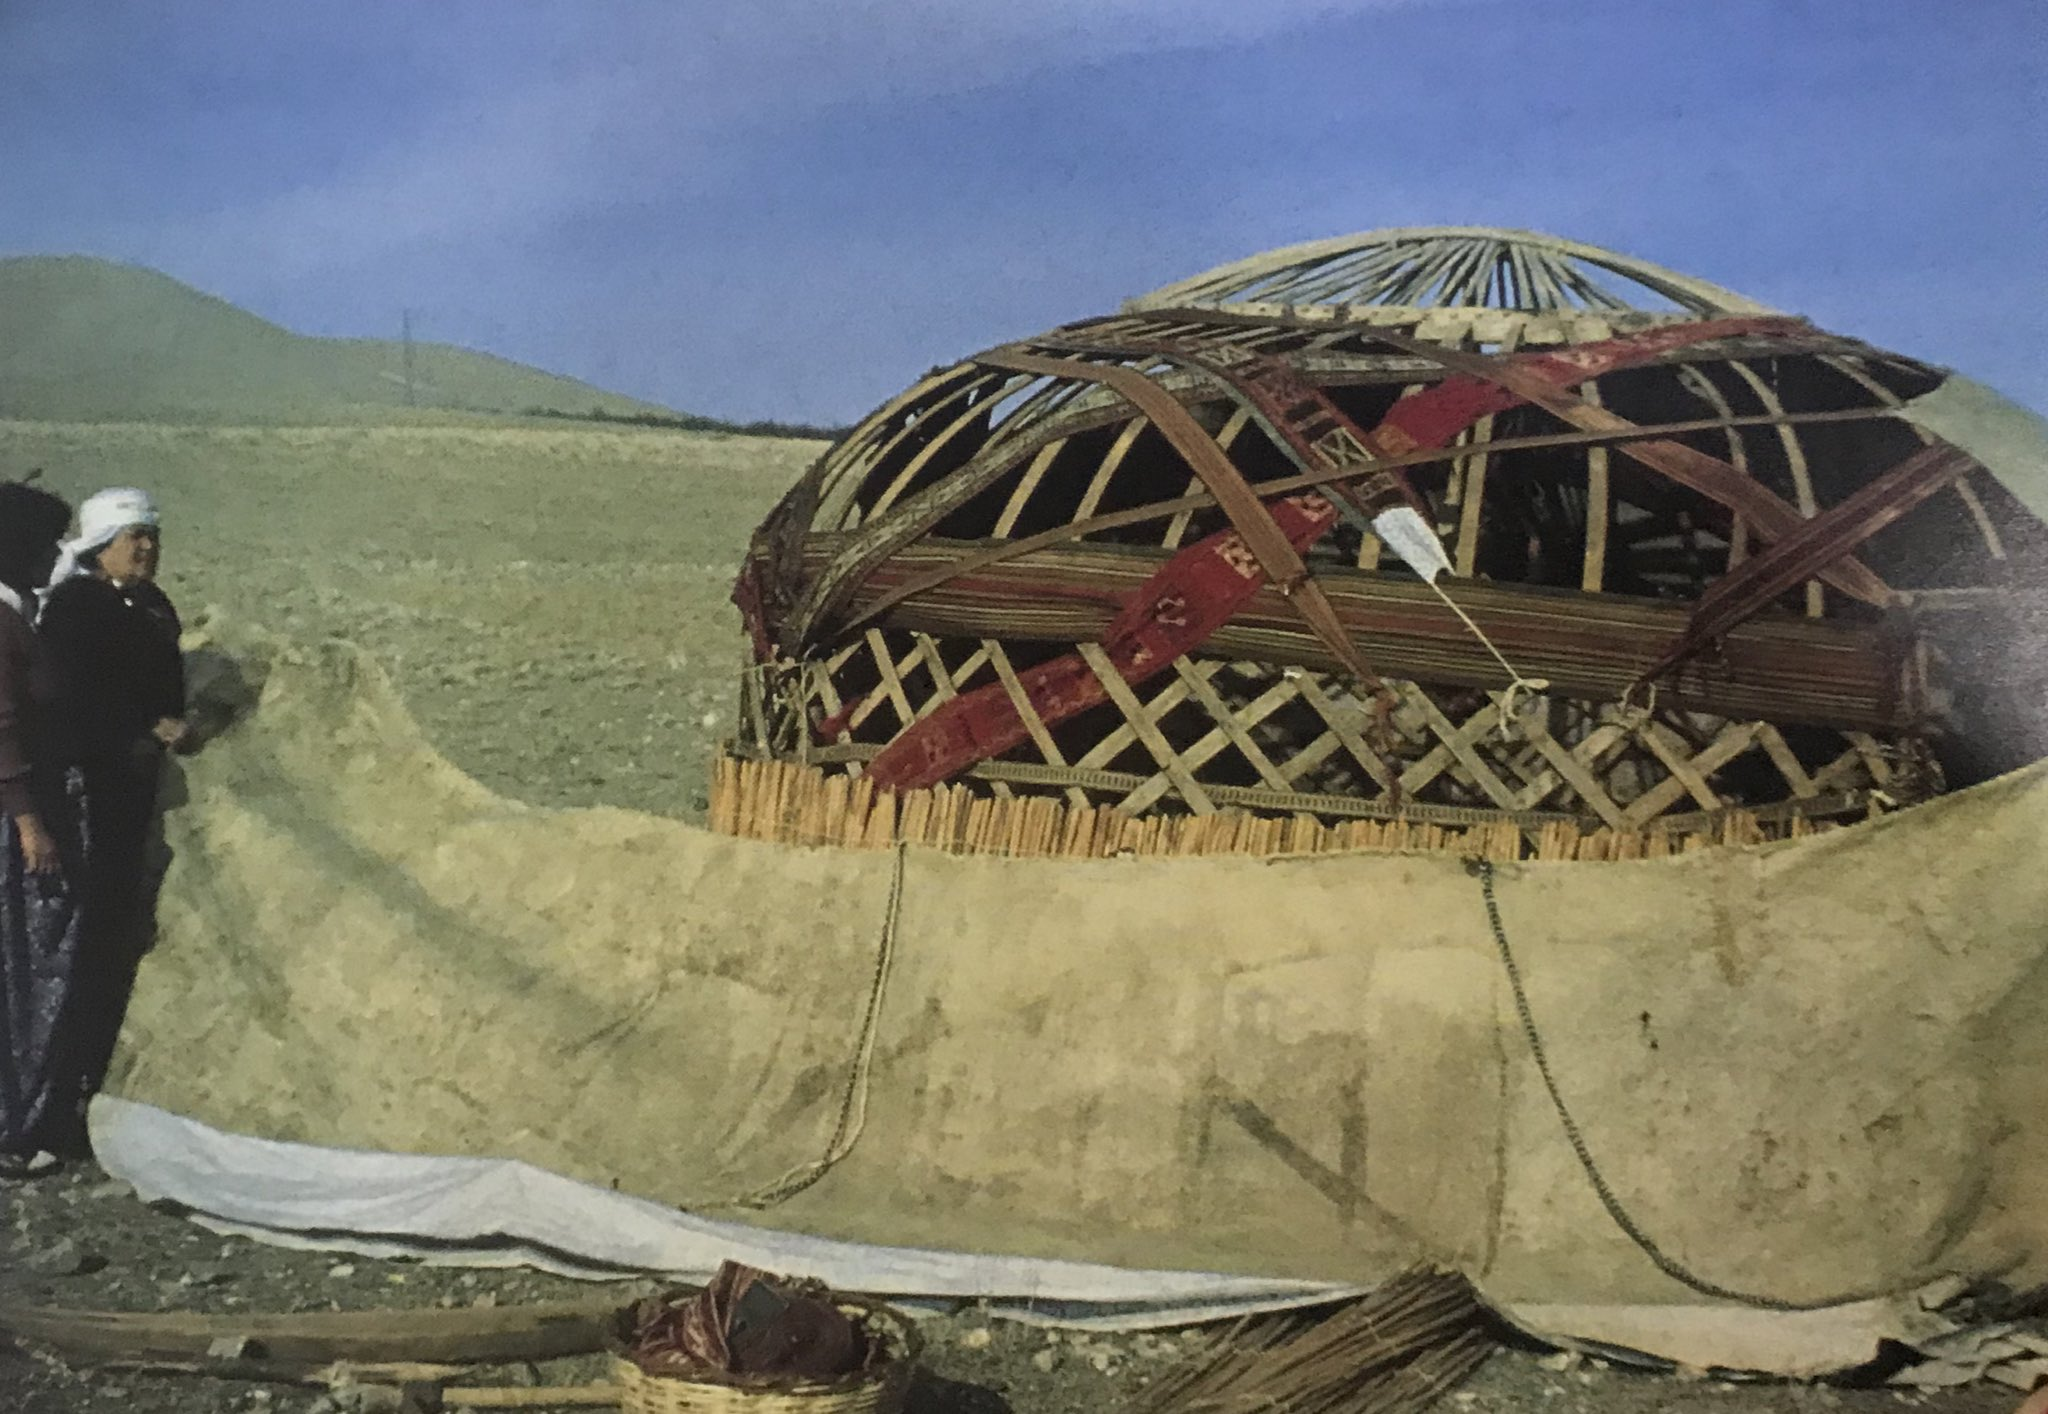 The felt coverage of the walls is wrapped around the tent, Bayat Turkmens, Emirdağ Pasture, Afyon, West-Central Turkey, 1980s